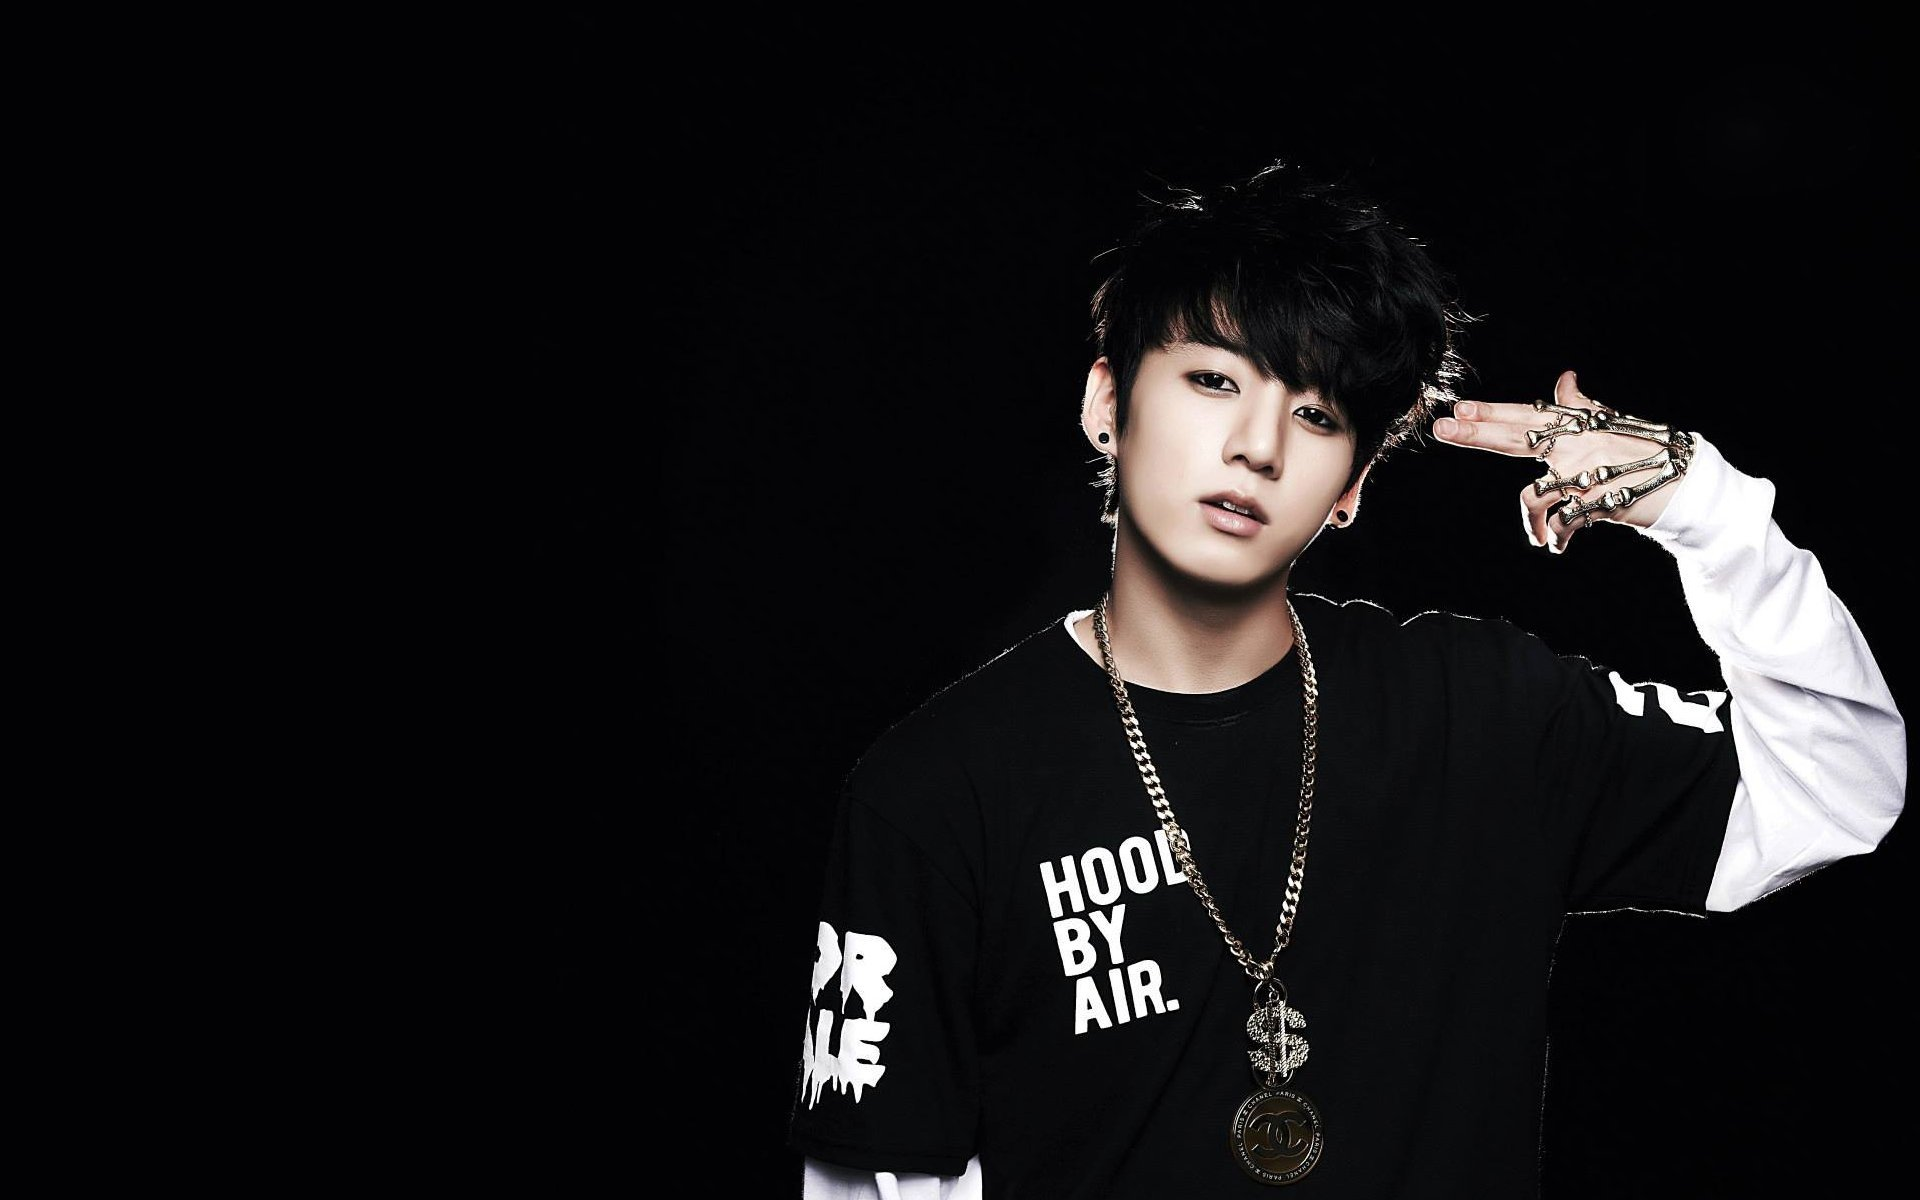 Download 9000+ Wallpaper Hp Jungkook Bts HD